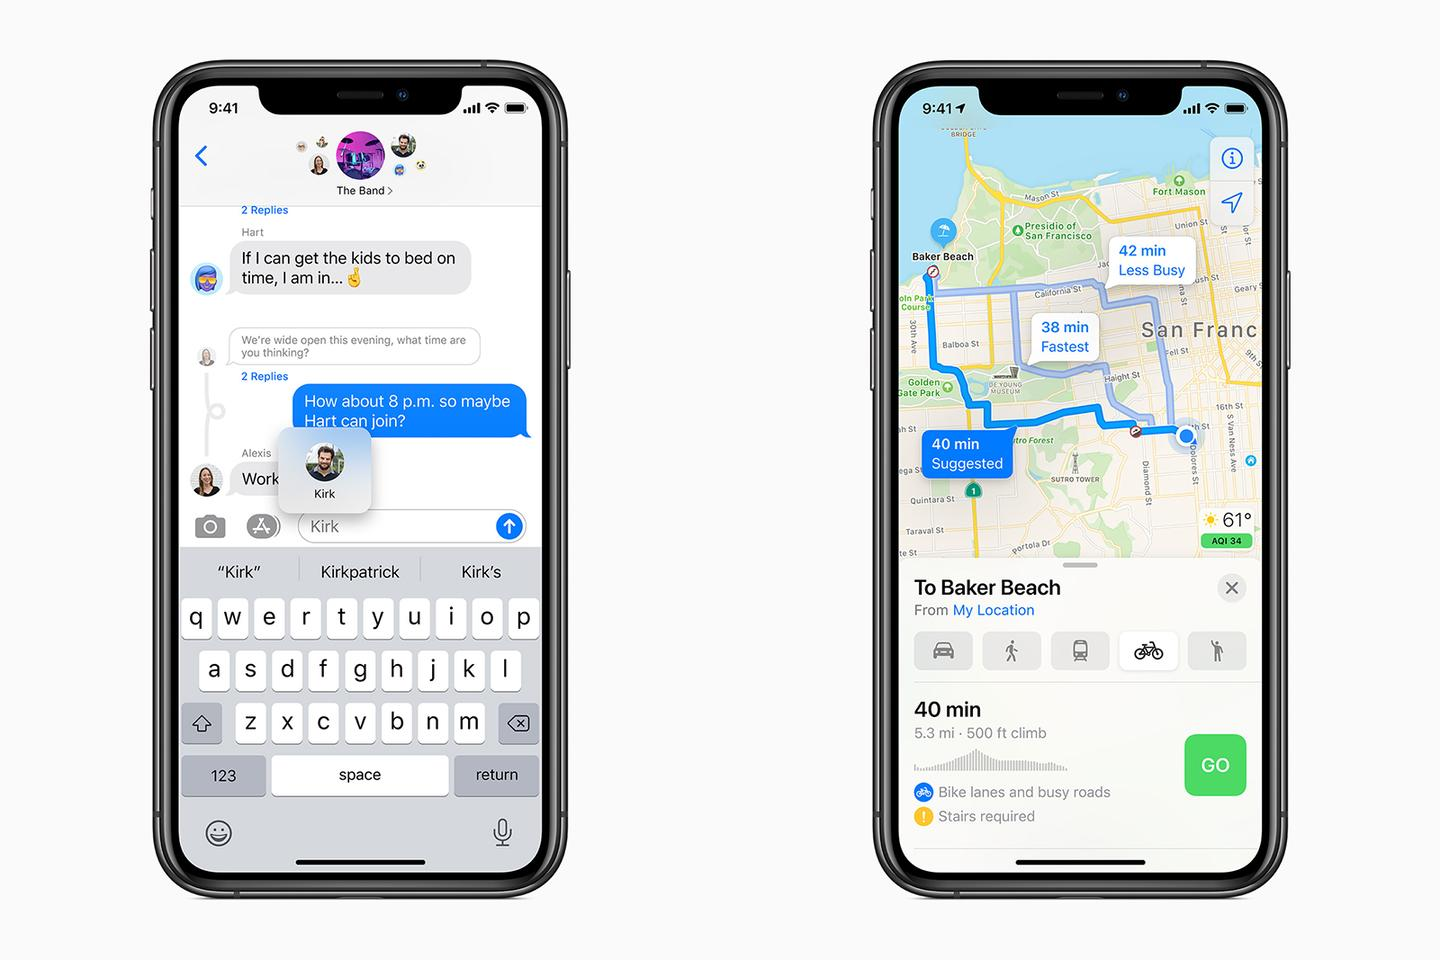 In iOS 14, Messages will handle group conversations better, while Maps is adding cycling directions